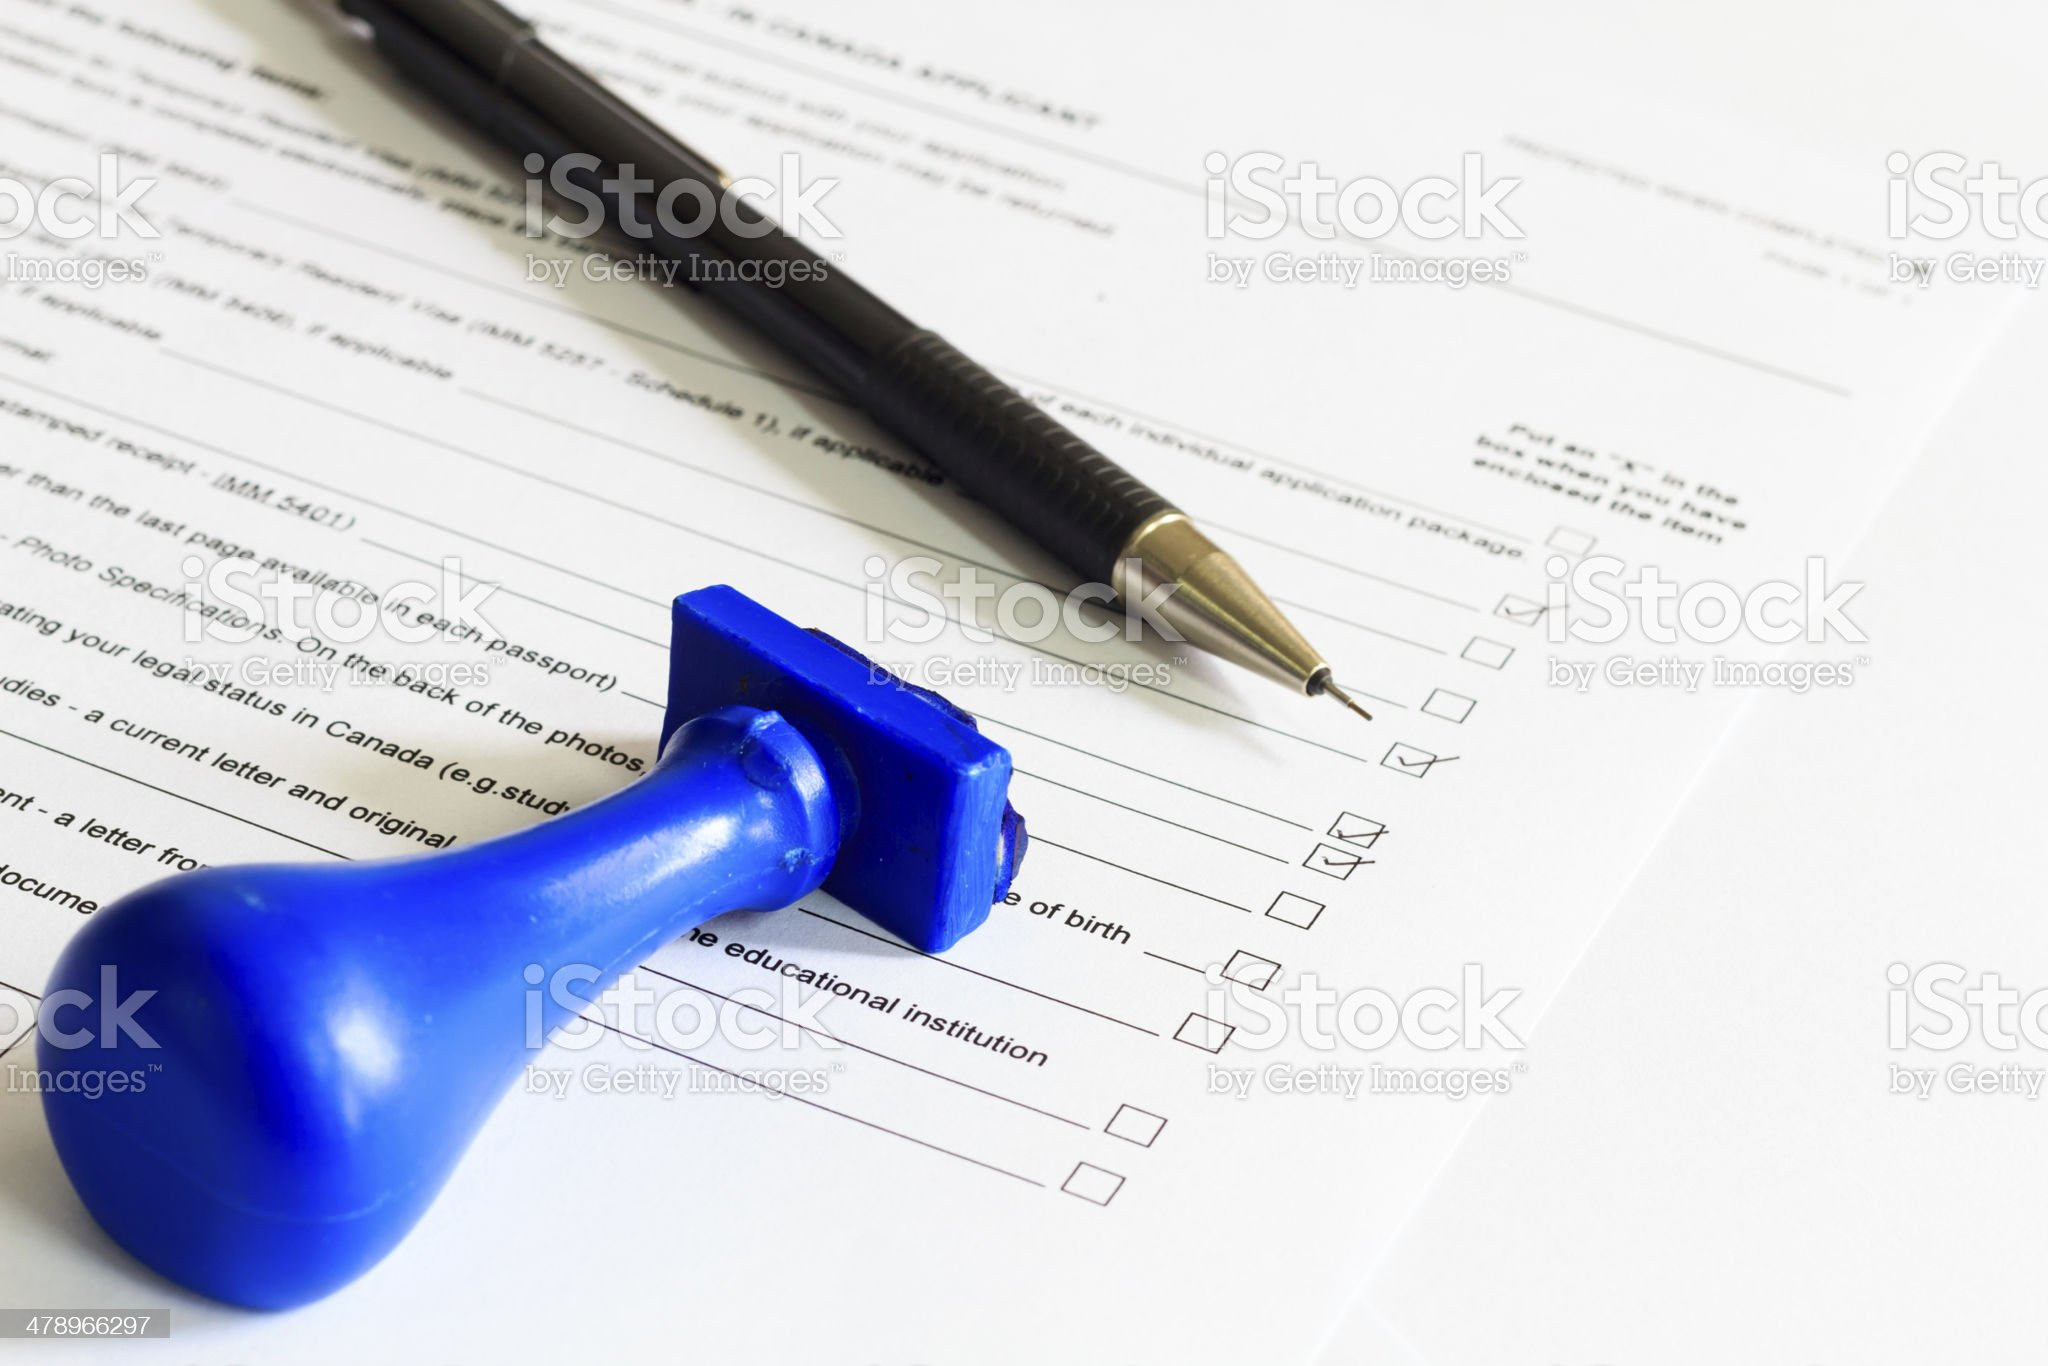 Concept of Audit Check list royalty-free stock photo